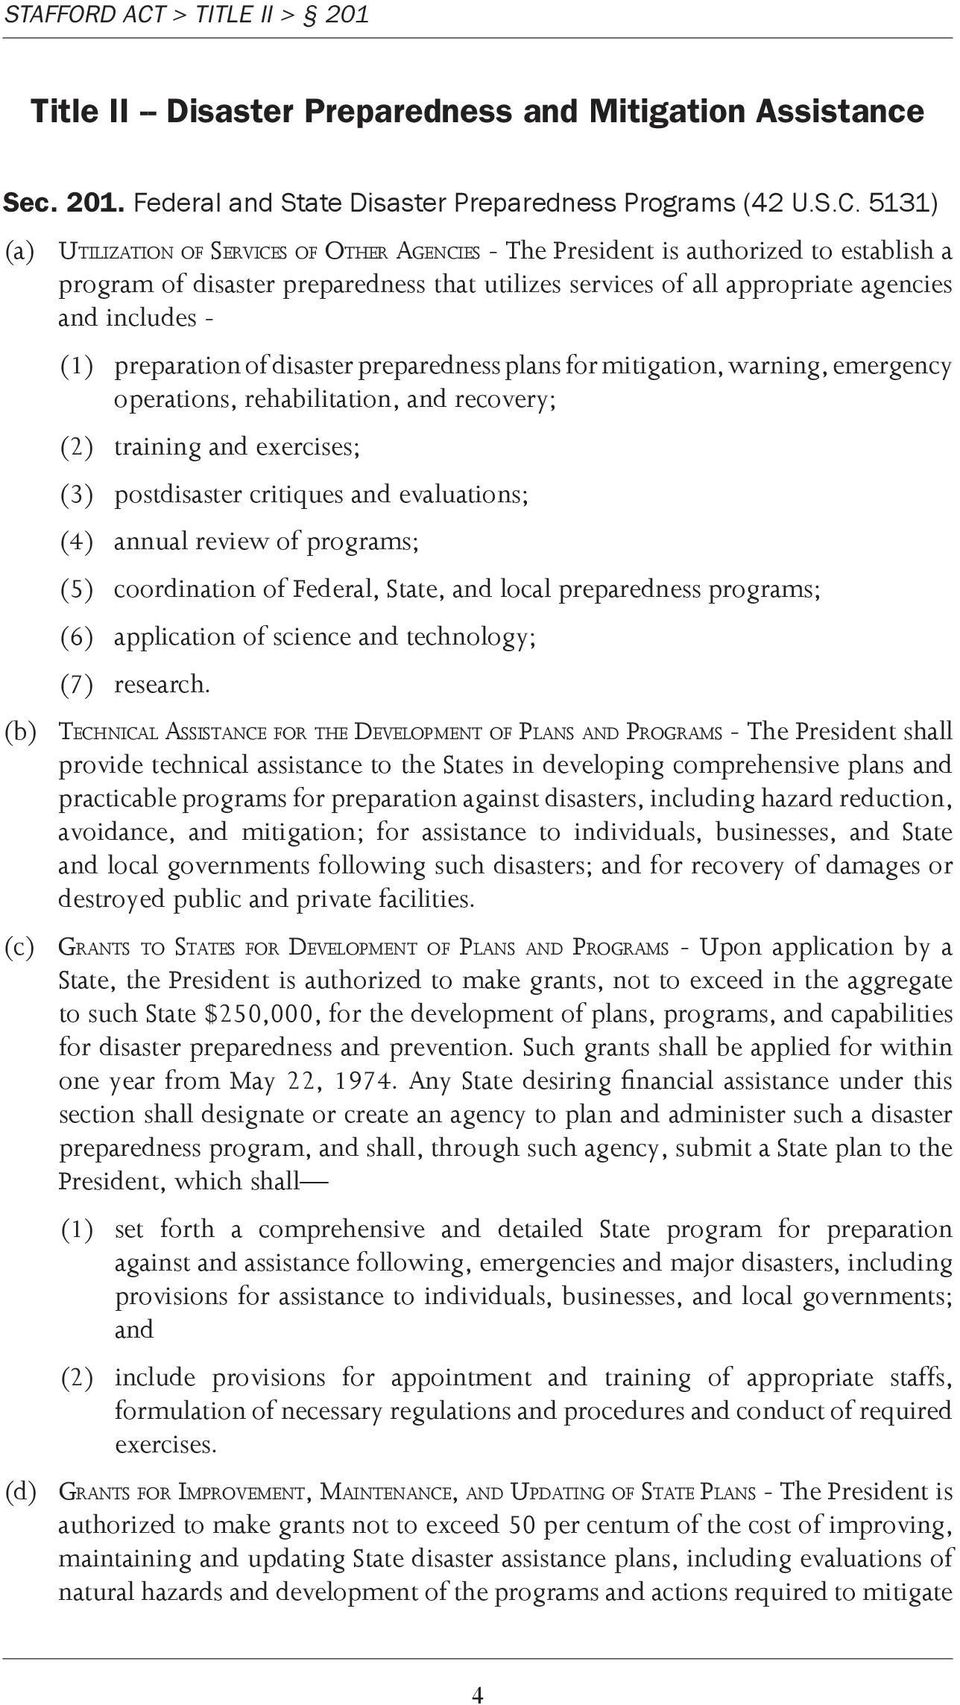 5131) (a) Utilization of services of other agencies - The President is authorized to establish a program of disaster preparedness that utilizes services of all appropriate agencies and includes - (1)